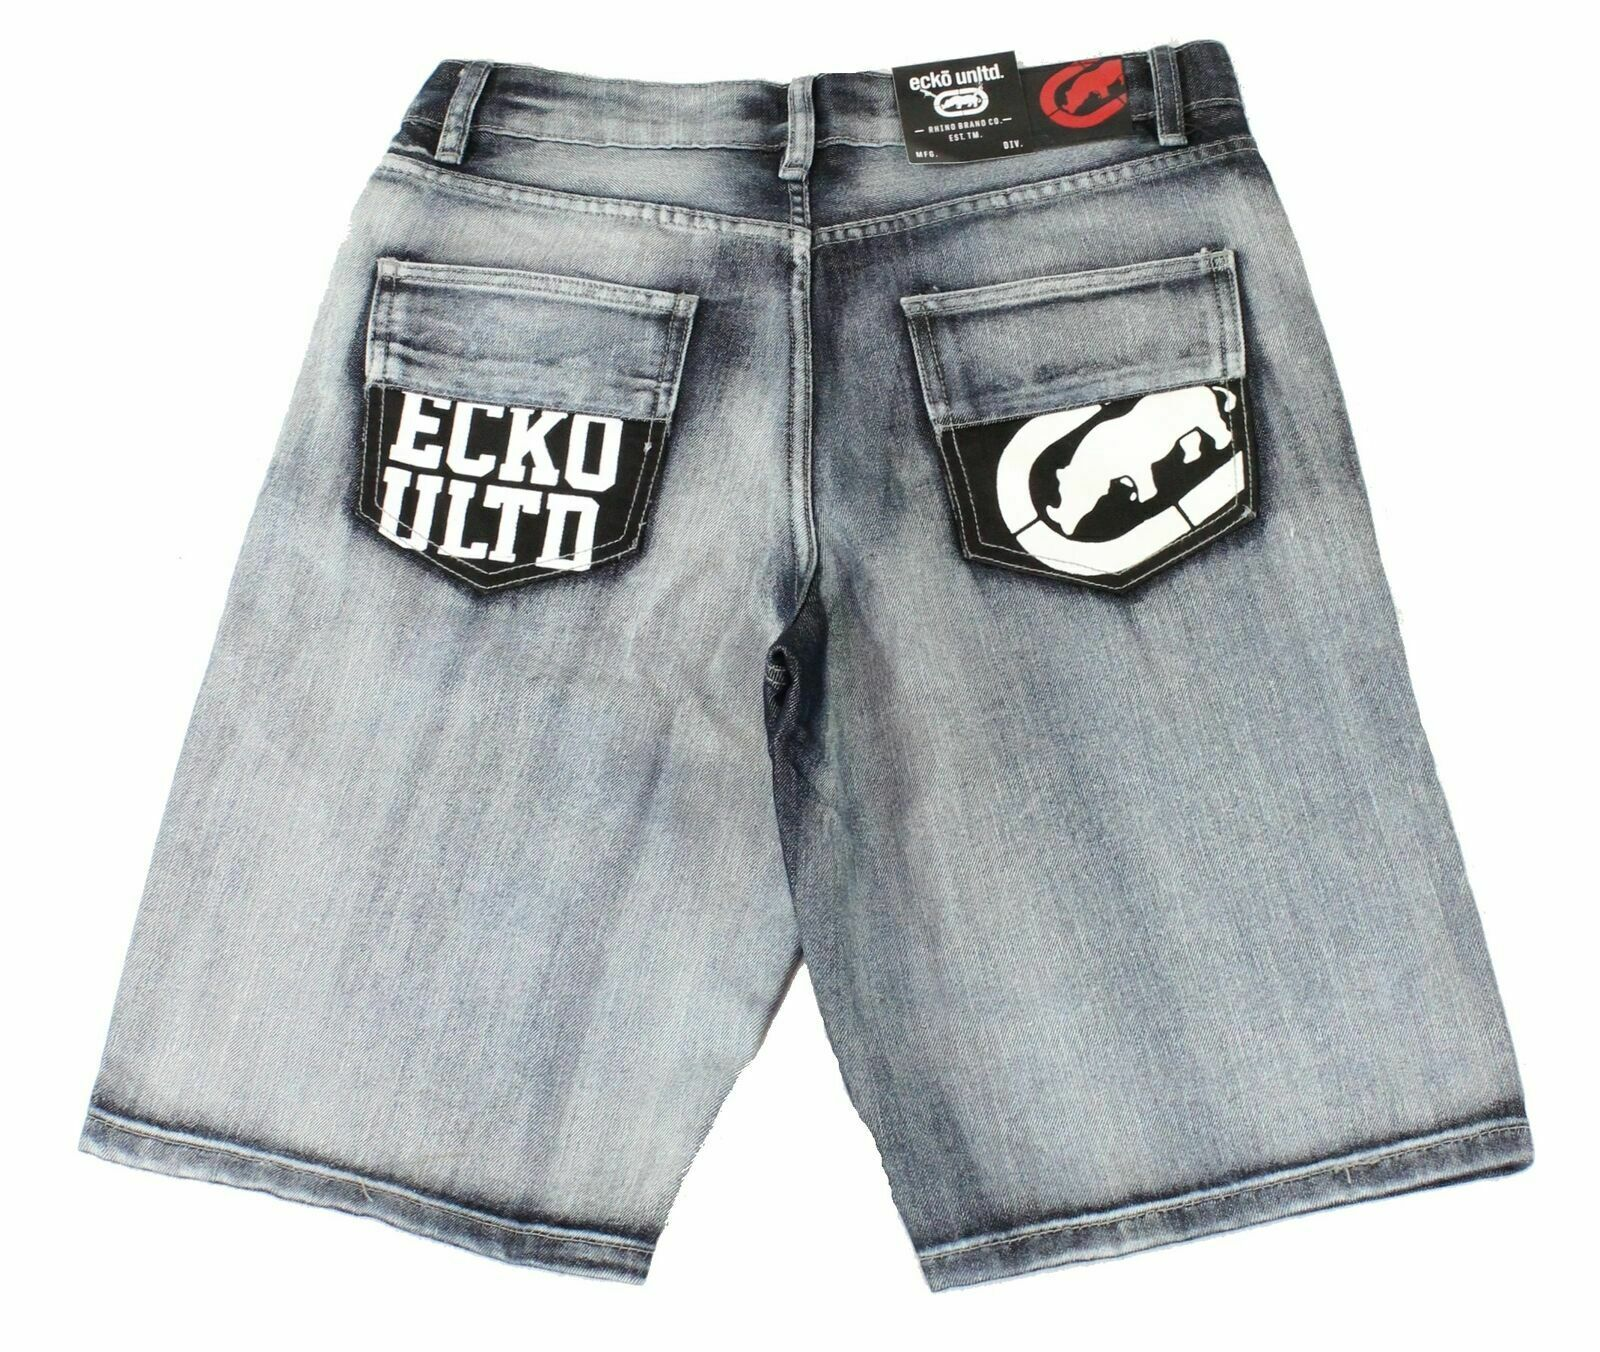 New-Ecko-Unltd-Mens-Shorts-Blue-Size-34-Denim-759-Relaxed-Logo-Printed-48-216 thumbnail 2